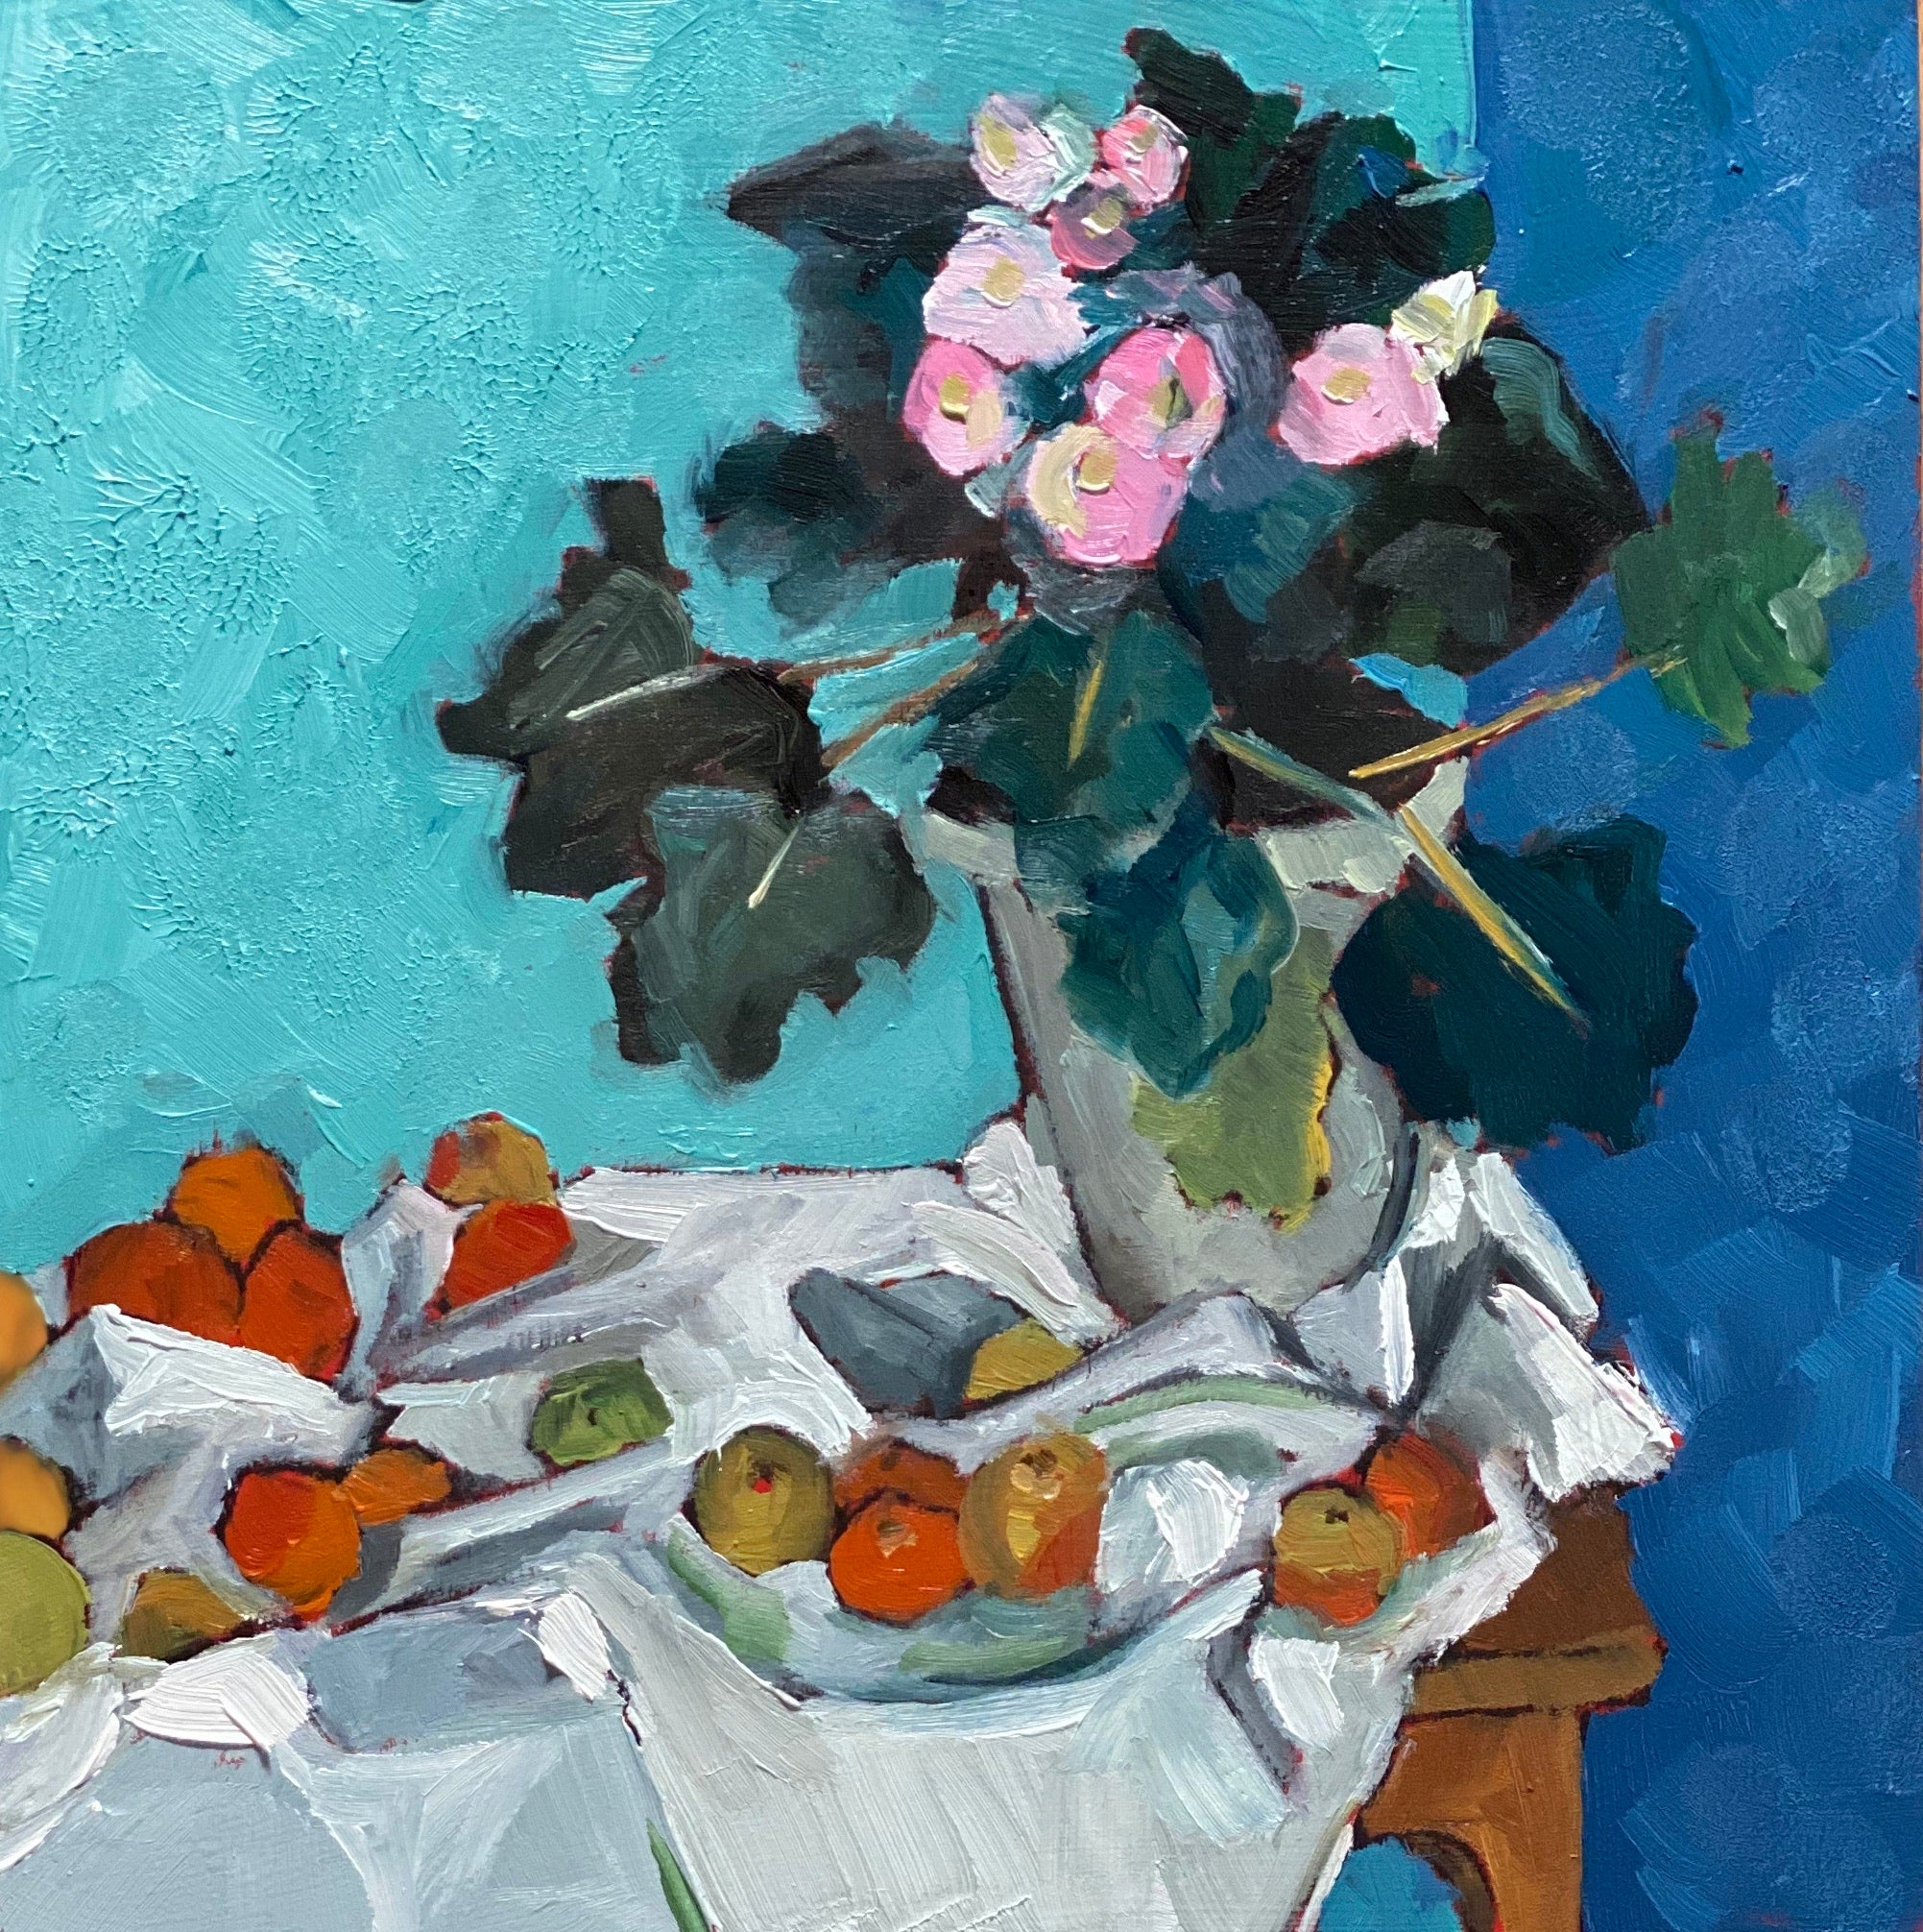 1690: Study of Still Life with Apples and a Pot of Primroses by Paul Cezanne